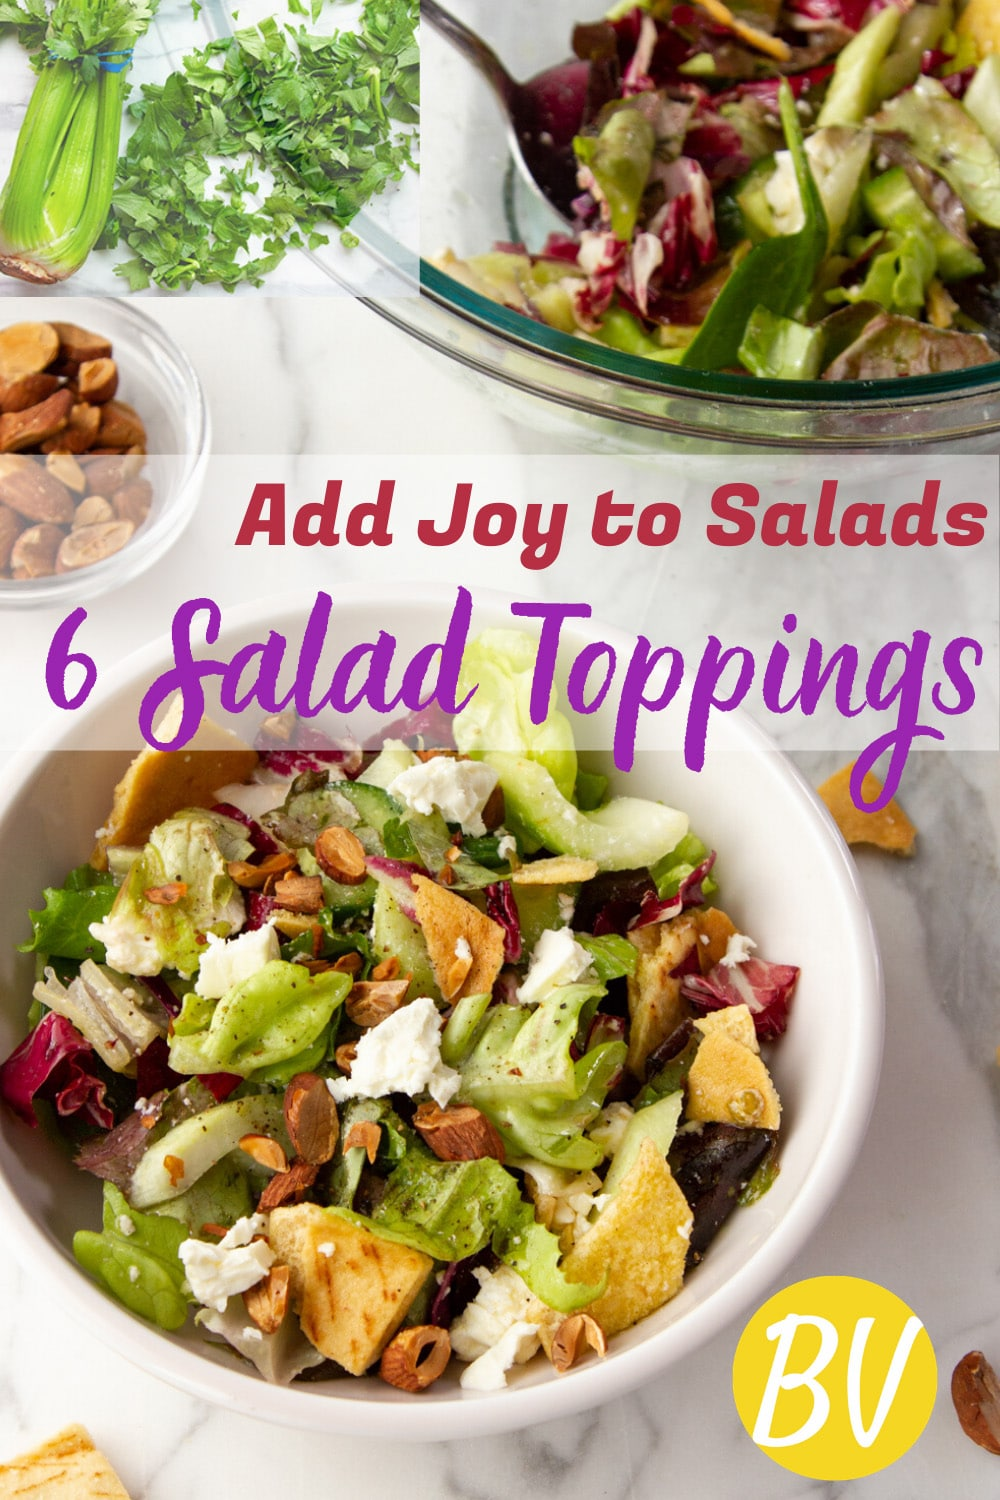 Six ideas for salad toppings that will add excitement, enjoyment, crunch, and flavor to winter salads, so you\'ll want to eat more healthy salads. #salad #toppings #dressings #vinaigrette #healthyfats #vegetables #butteredveg